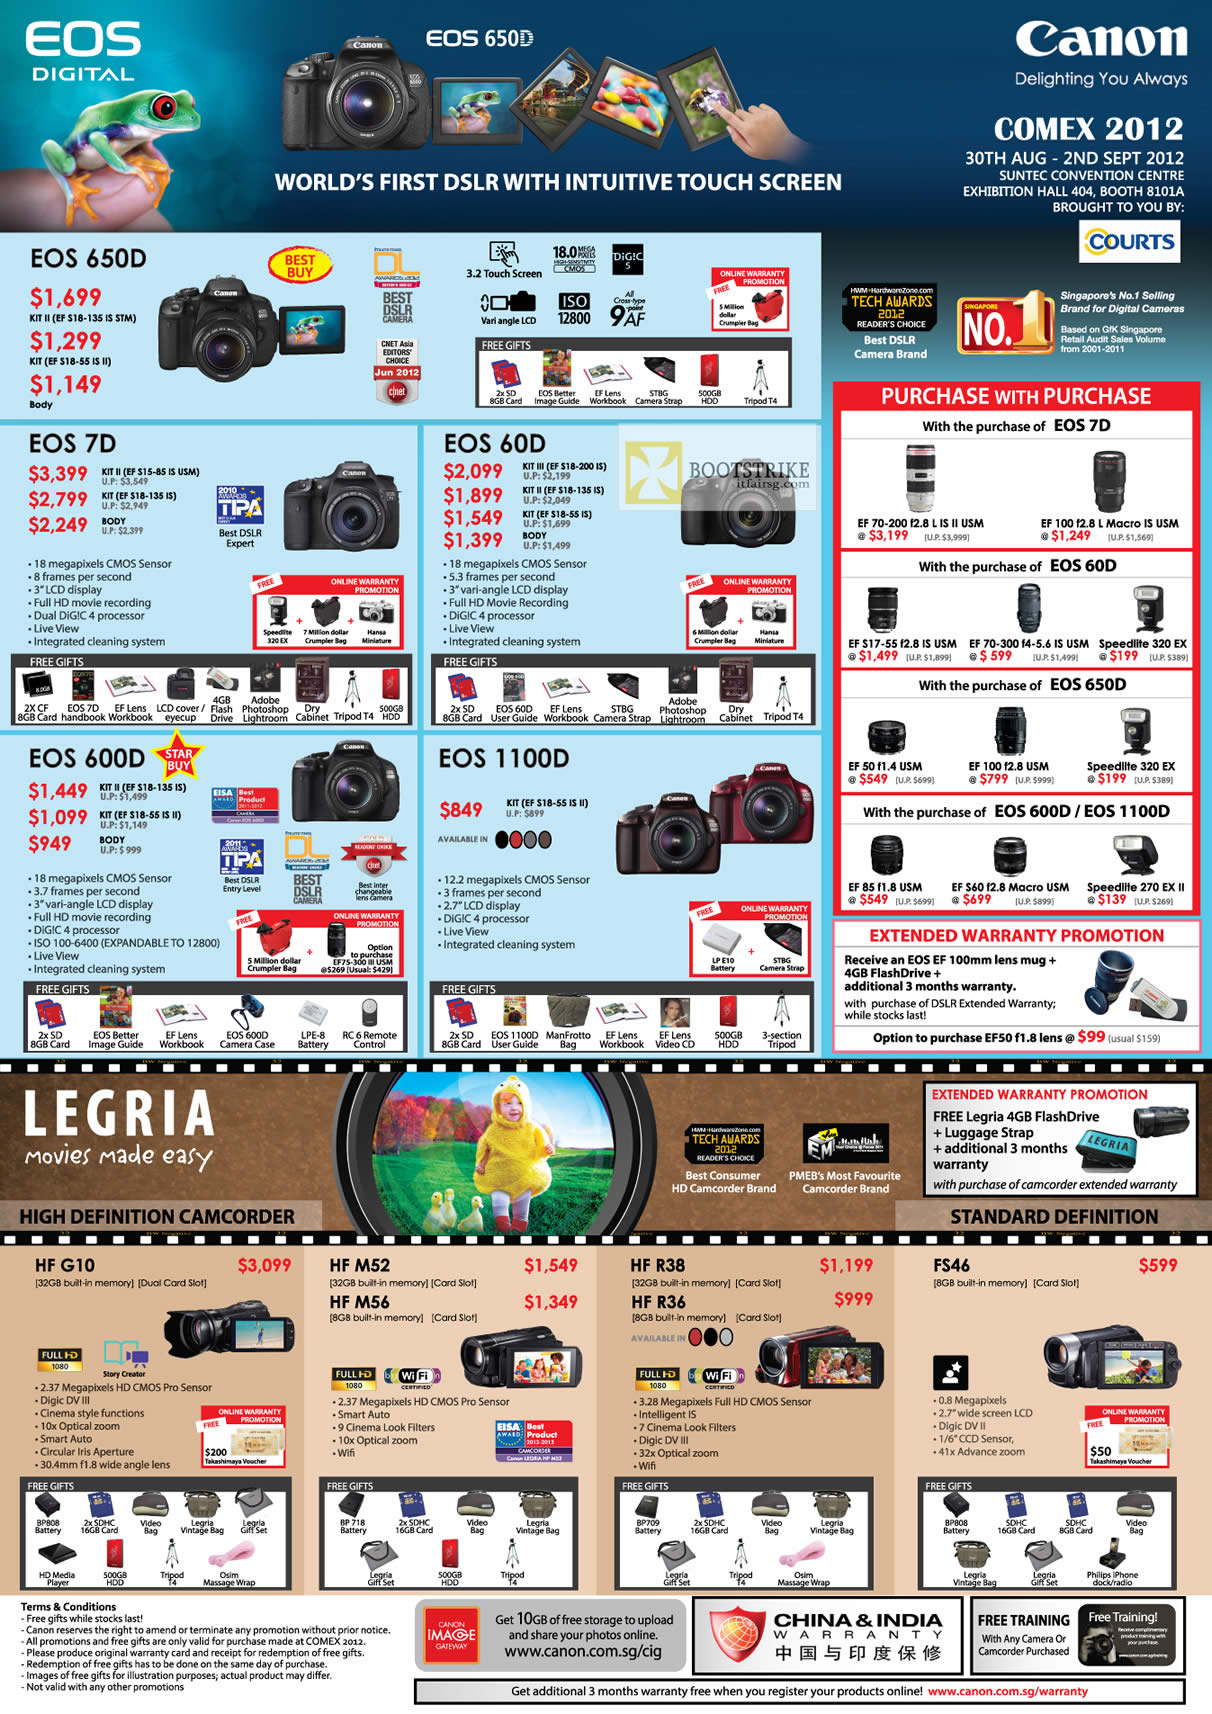 COMEX 2012 price list image brochure of Canon Digital Cameras DSLR EOS 650D 7D 60D 600D 1100D, Legria Video Camcorders HF G10 M52 M56 R38 R36 FS46